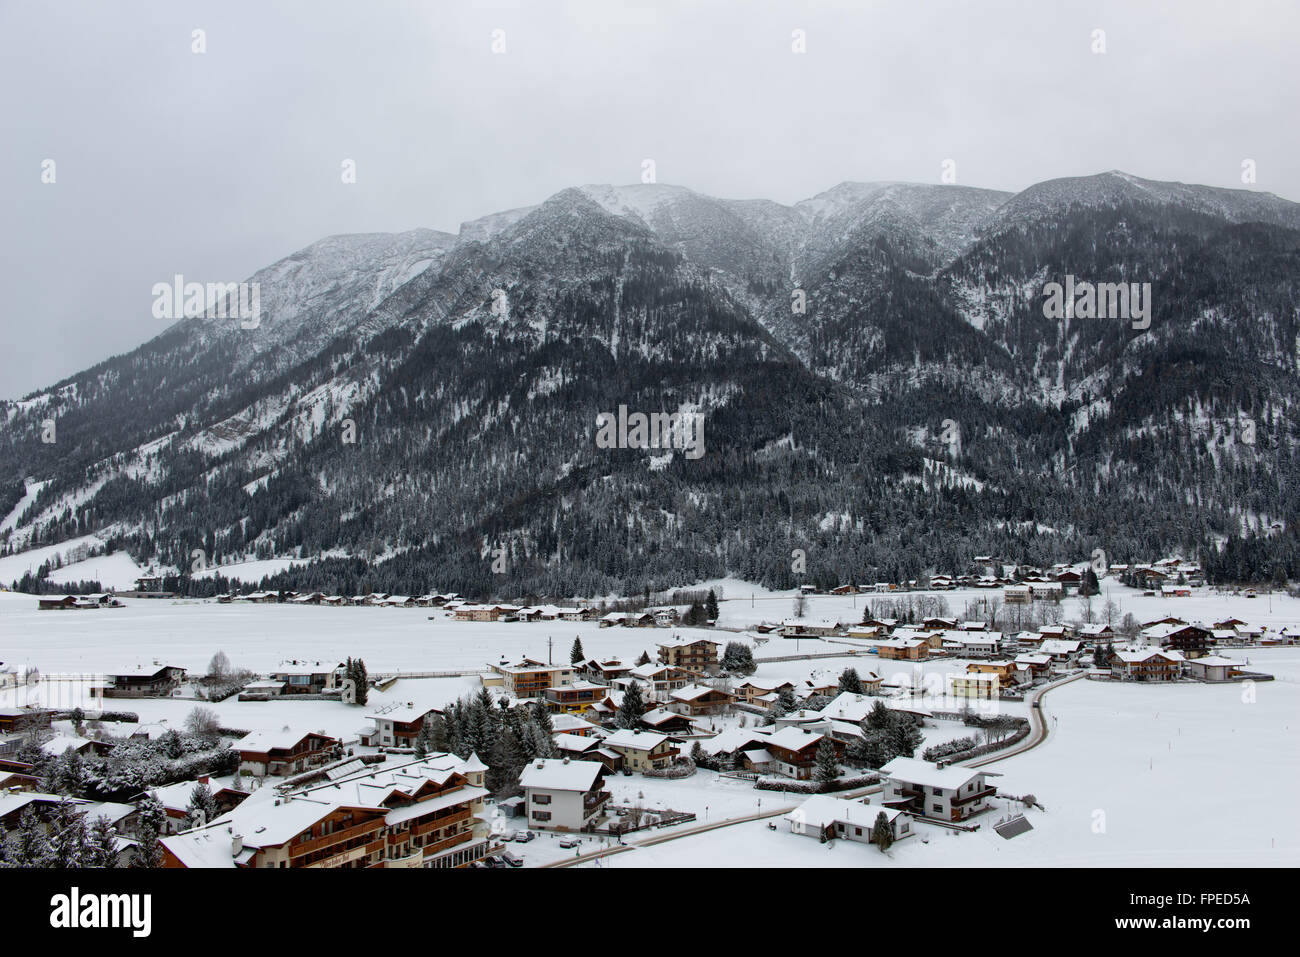 High angle view of Achenkirch, Austria, a scenic ski resort in an alpine valley under a thick covering of white - Stock Image